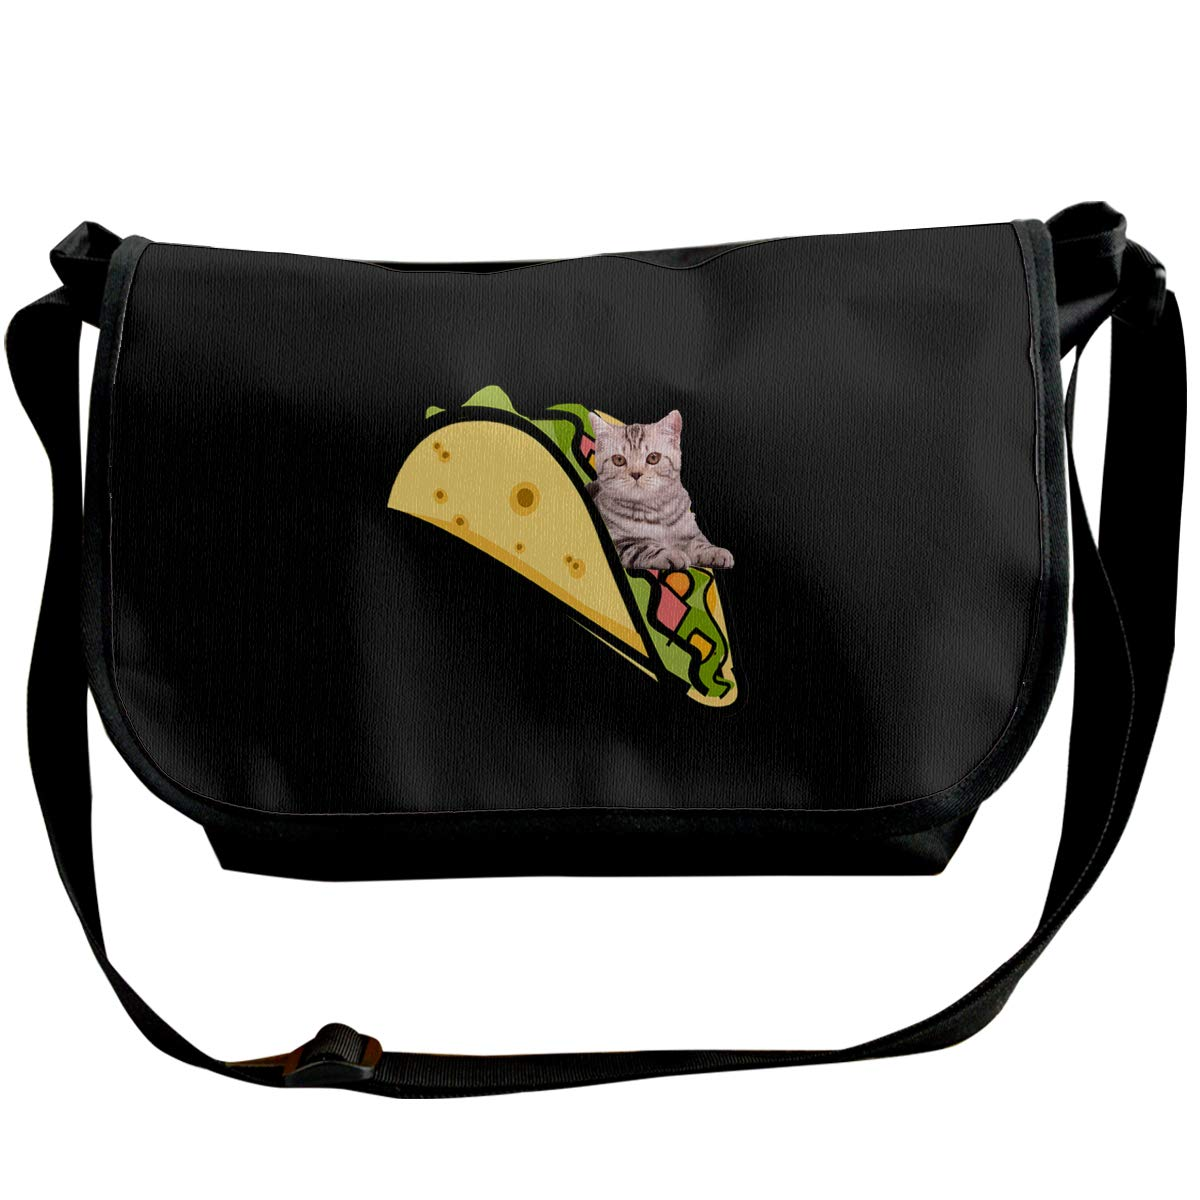 Futong Huaxia Tacos Travel Messenger Bags Handbag Shoulder Bag Crossbody Bag Unisex